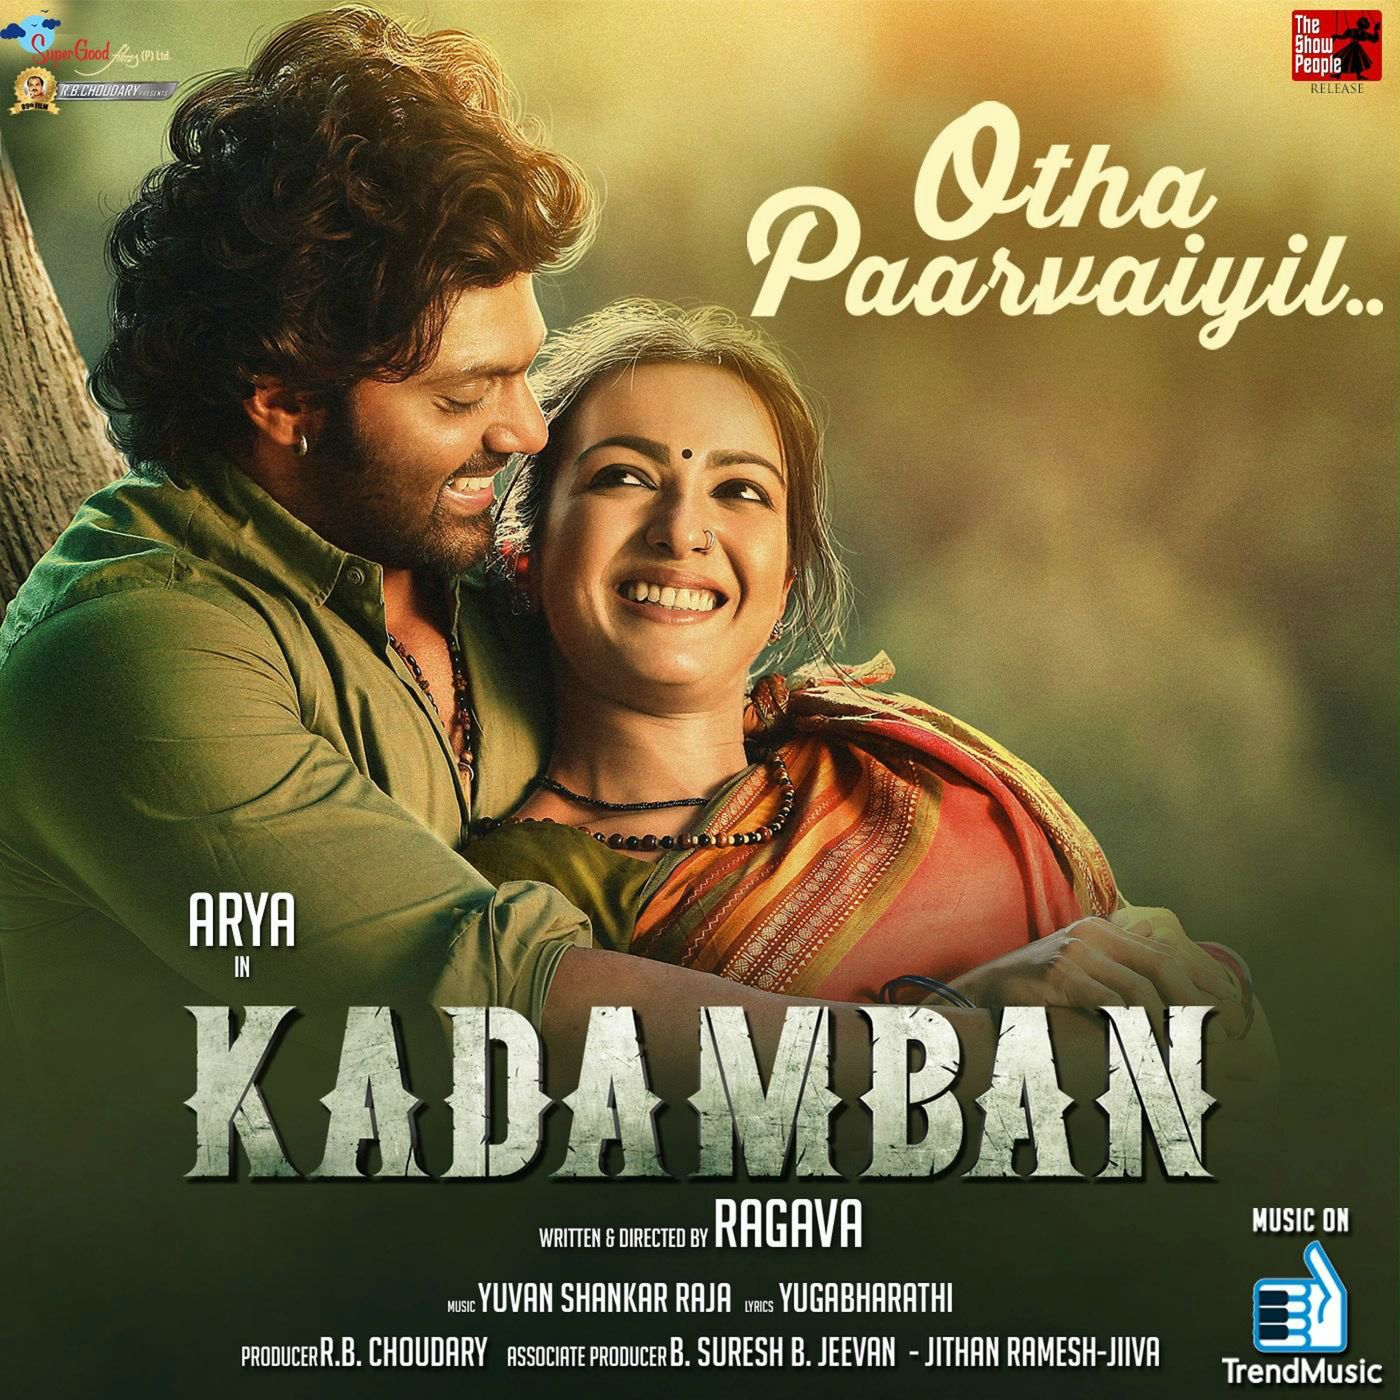 otha paarvaiyil lyrics tamil songs lyrics otha paarvaiyil lyrics